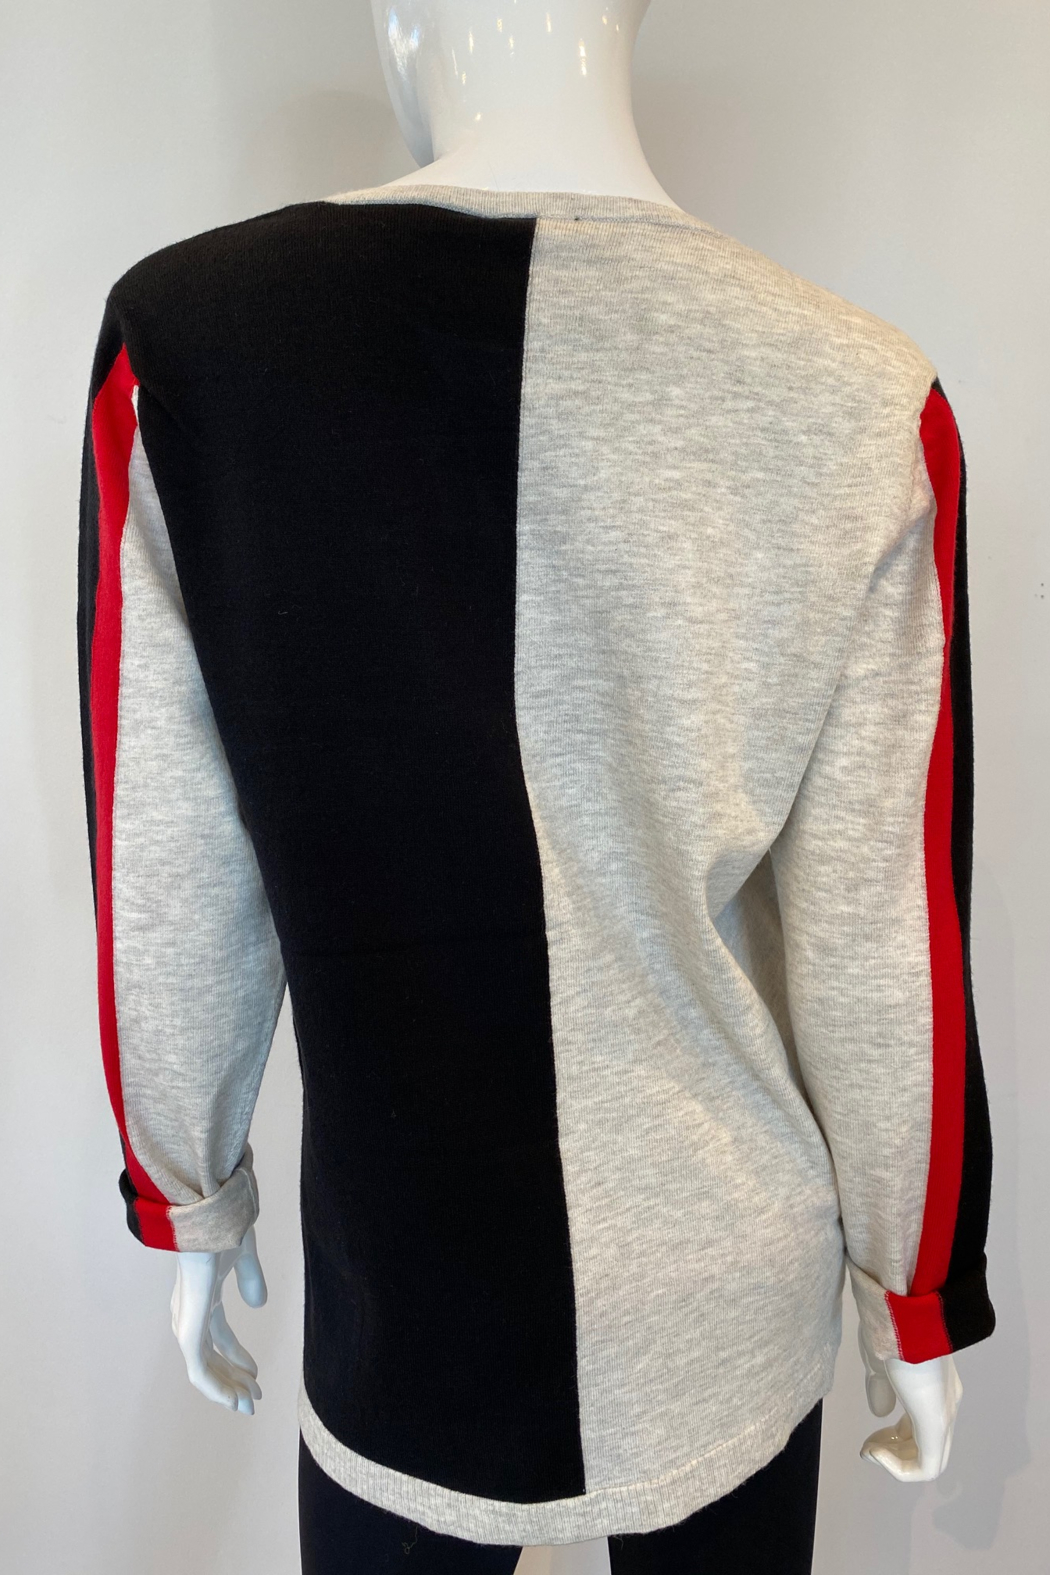 ByLyse 762-2222 - Sweater - Front Full Image